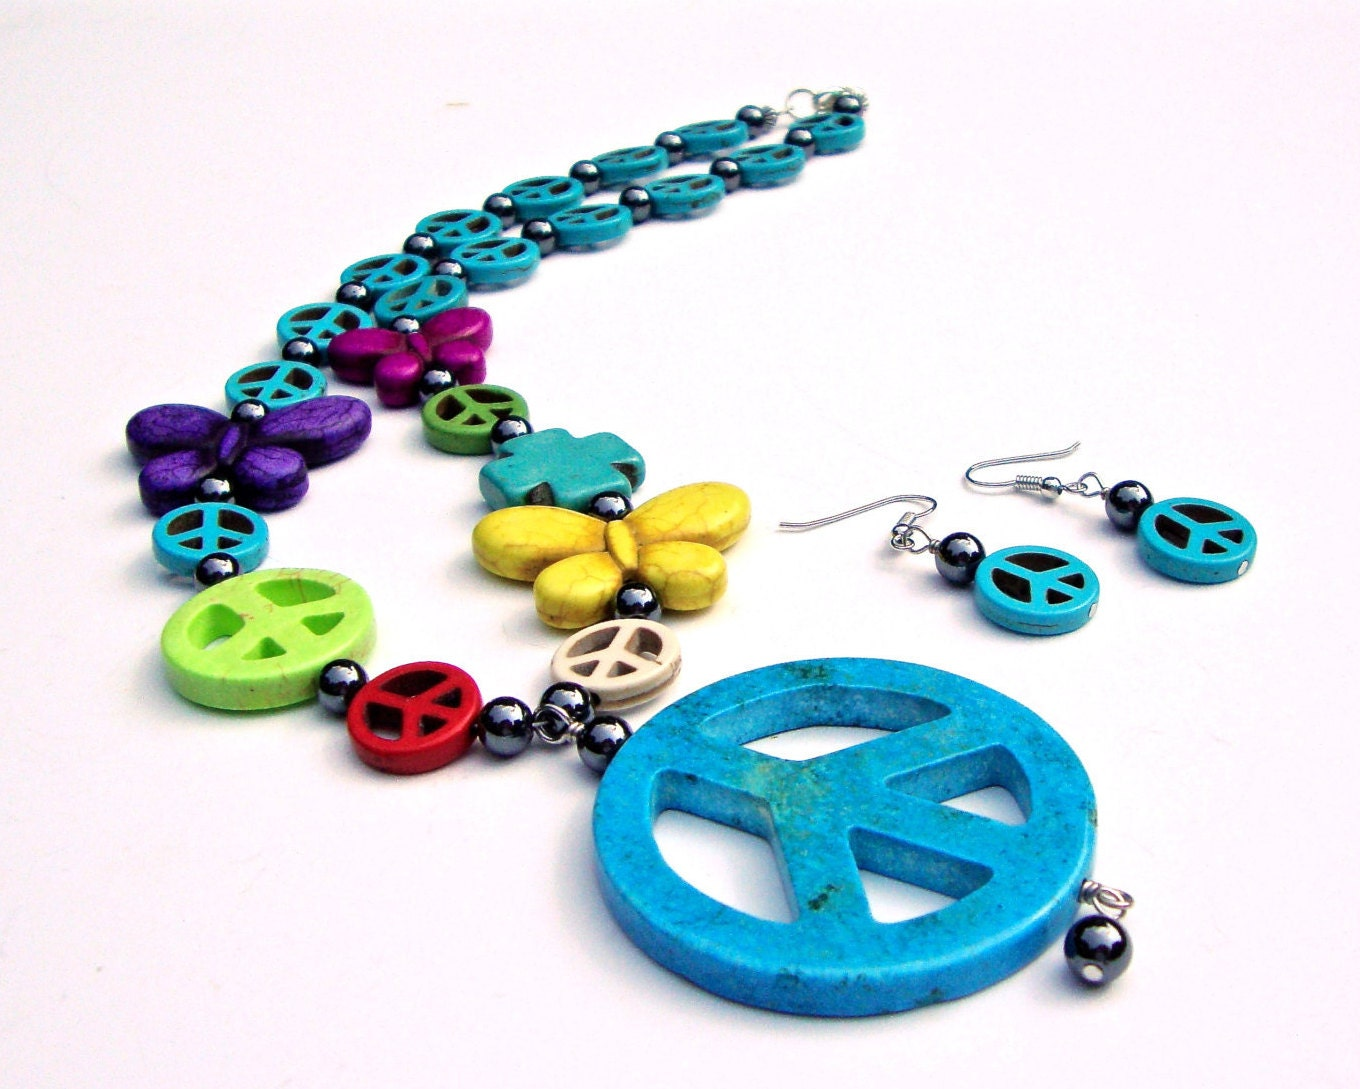 large peace sign pendant necklace kitsch jewelry turquoise